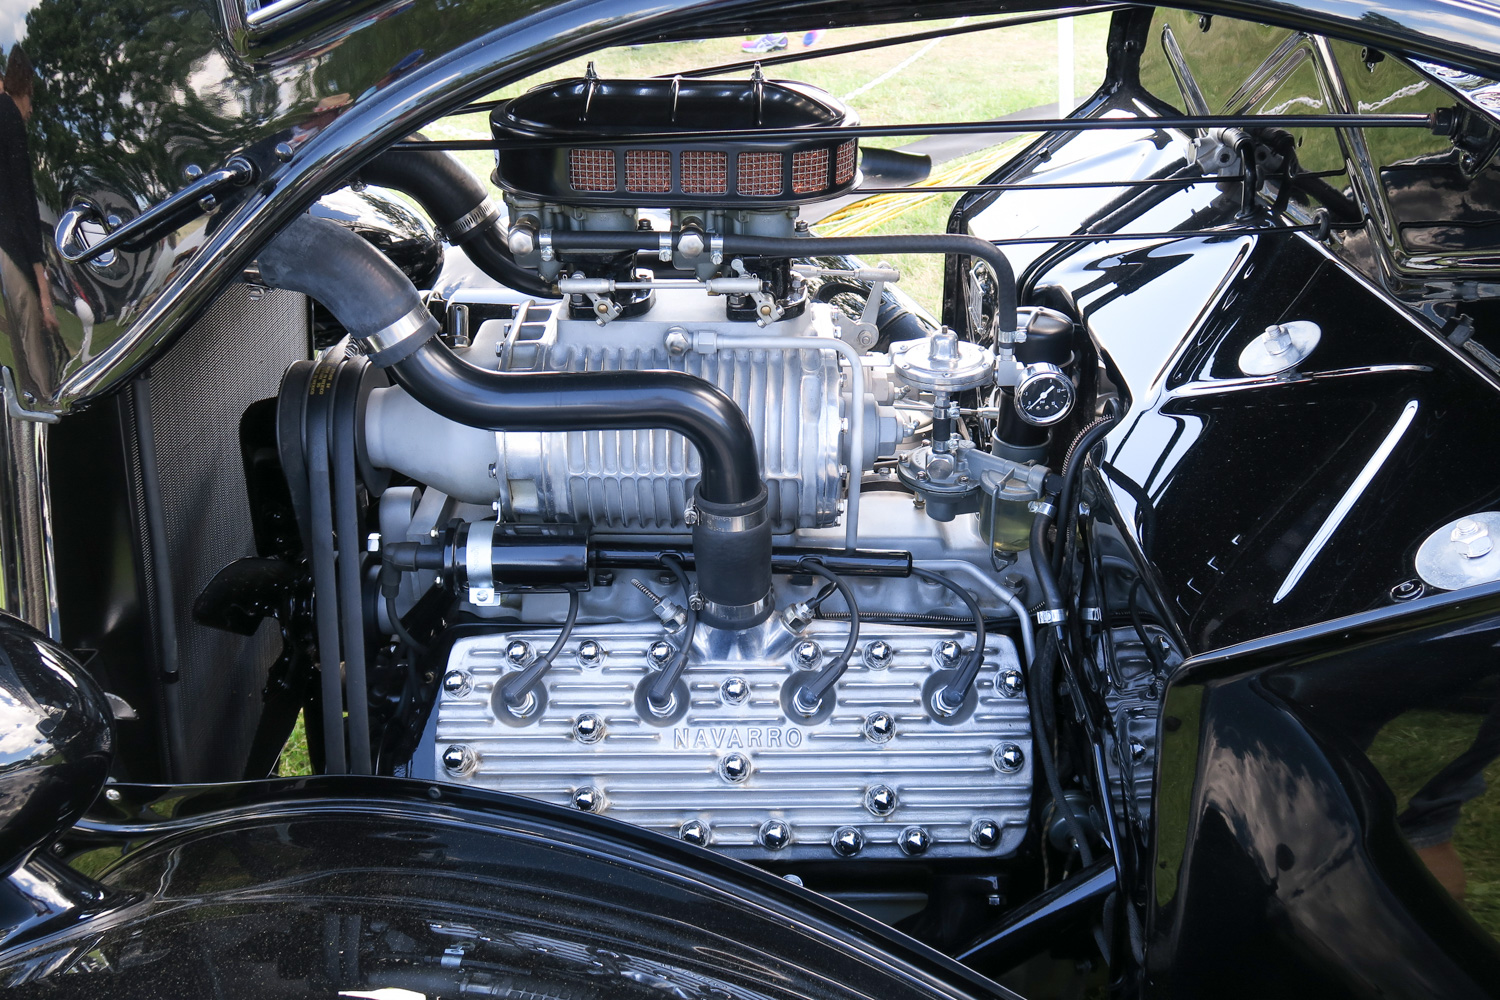 Ford Flathead V-8 supercharger